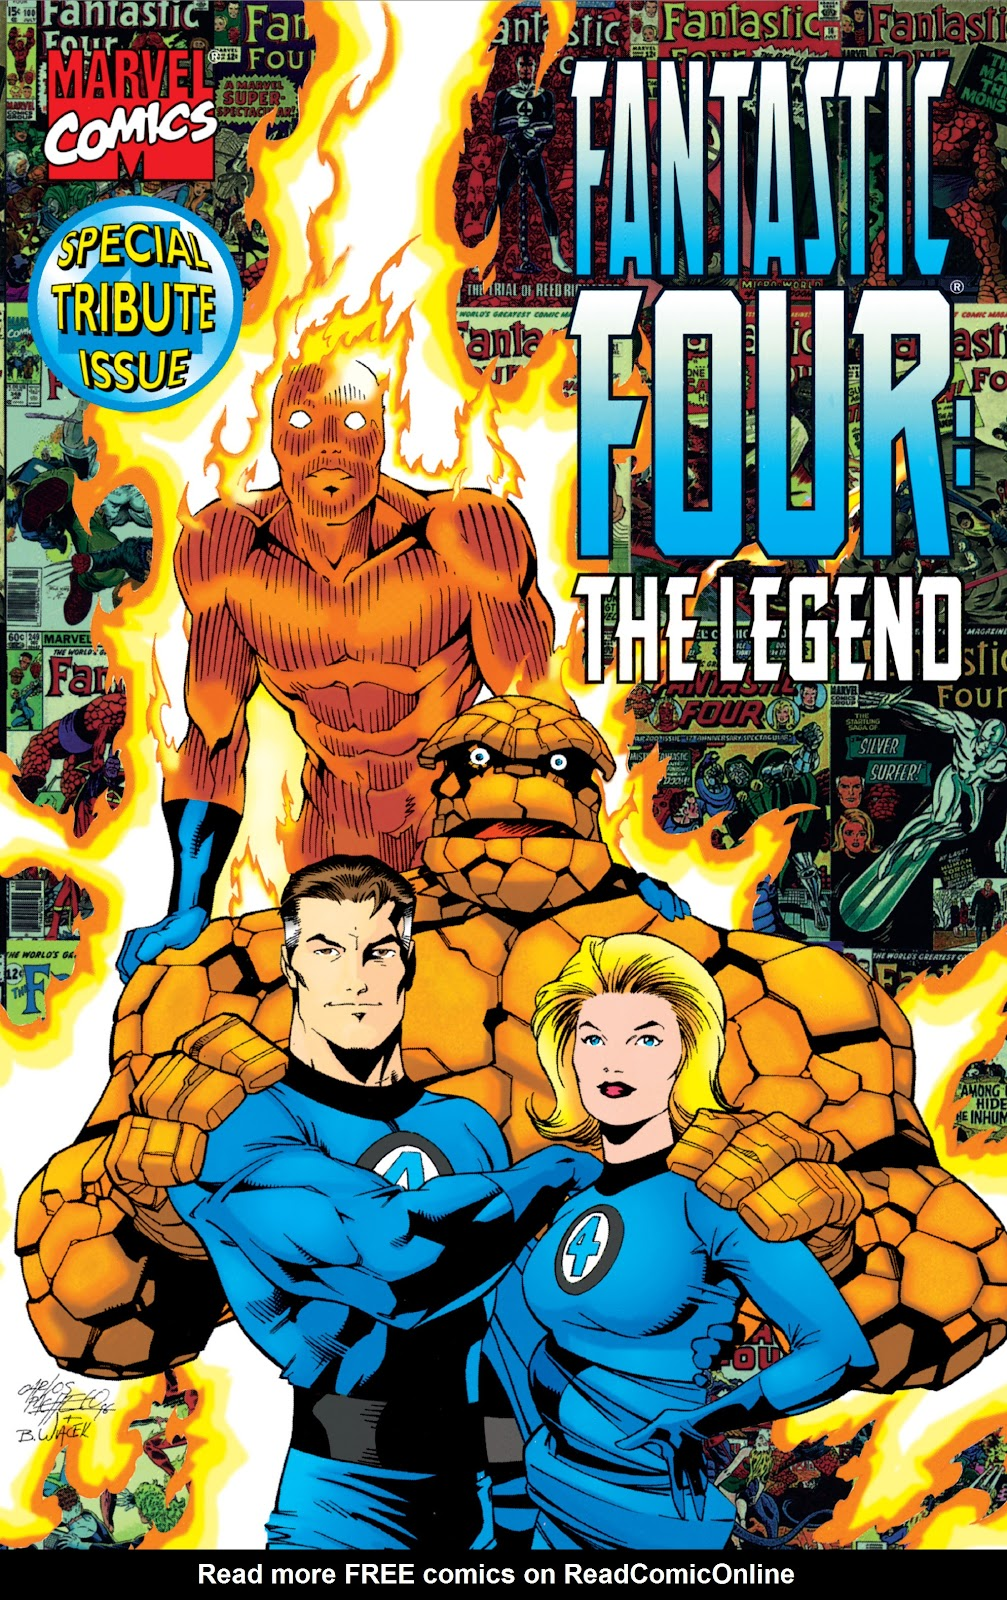 Read online Fantastic Four: The Legend comic -  Issue # Full - 1